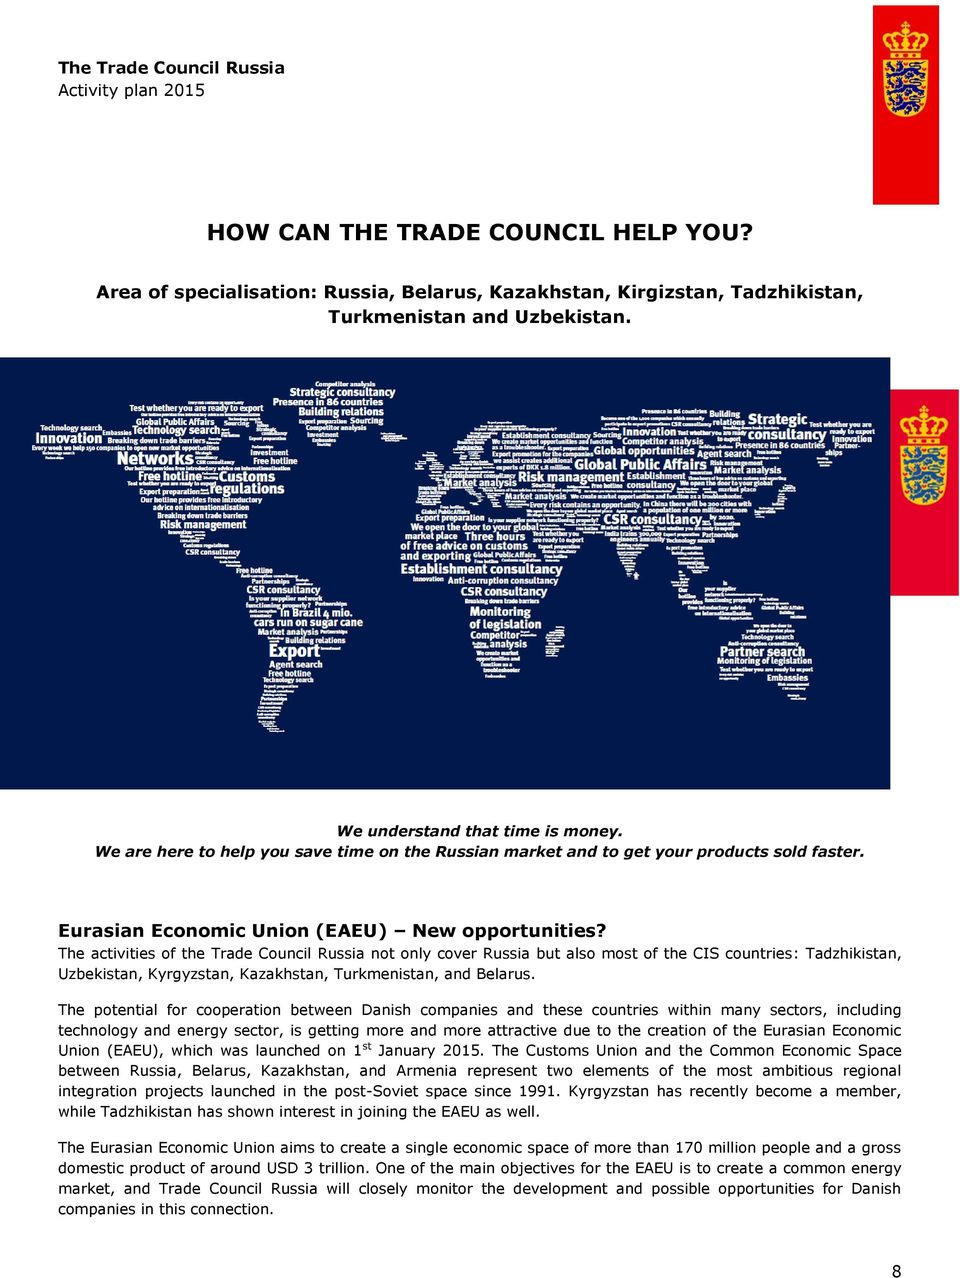 The activities of the Trade Council Russia not only cover Russia but also most of the CIS countries: Tadzhikistan, Uzbekistan, Kyrgyzstan, Kazakhstan, Turkmenistan, and Belarus.